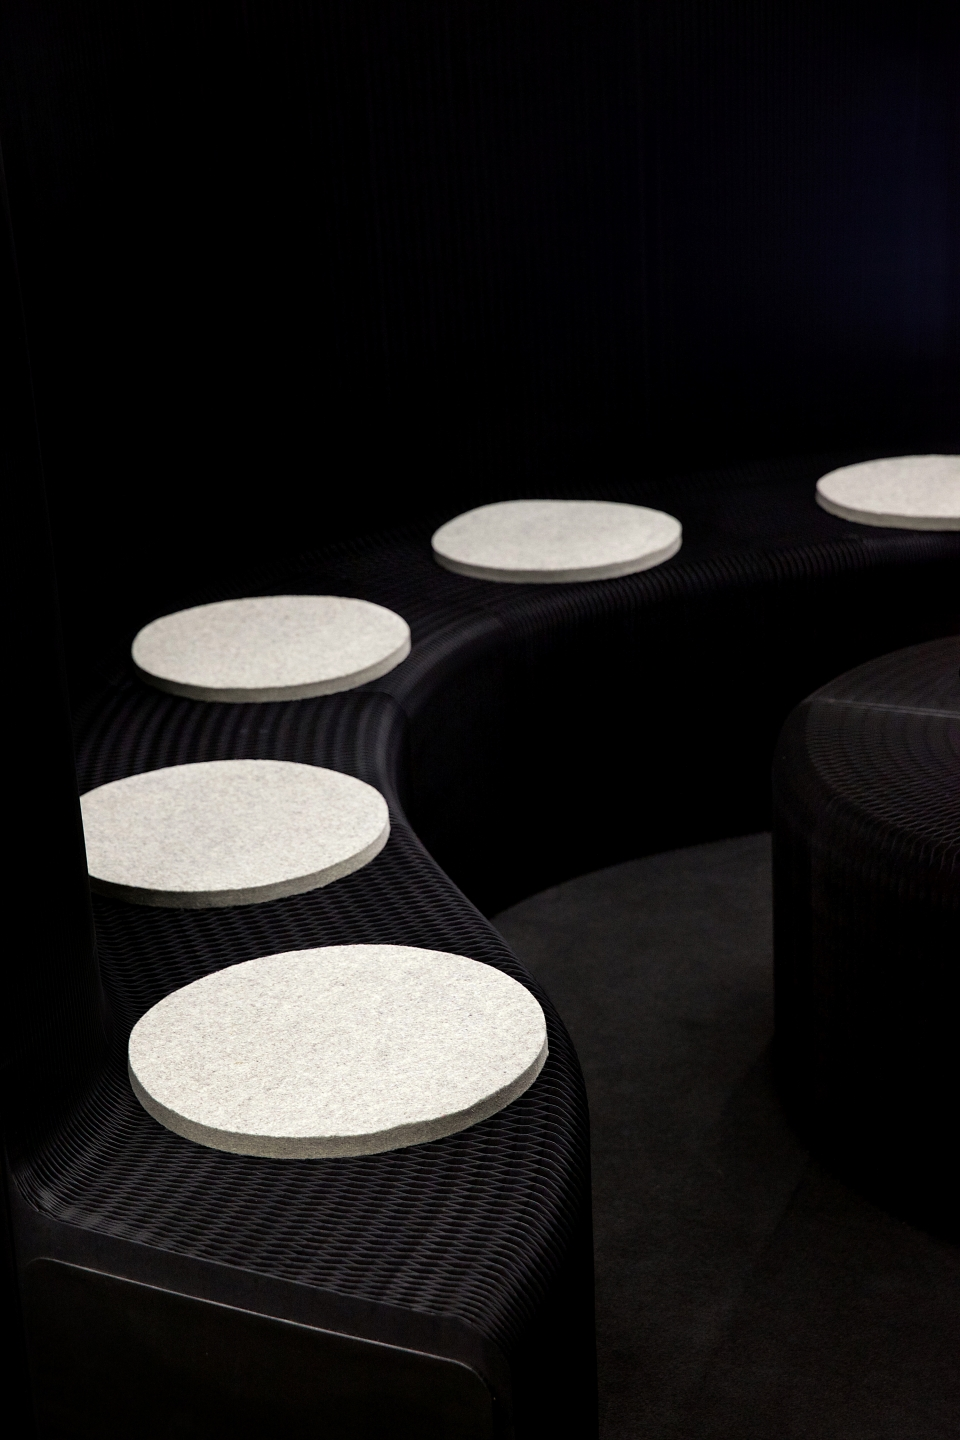 grey wool felt pads line a black benchwall at Orgatec 2014